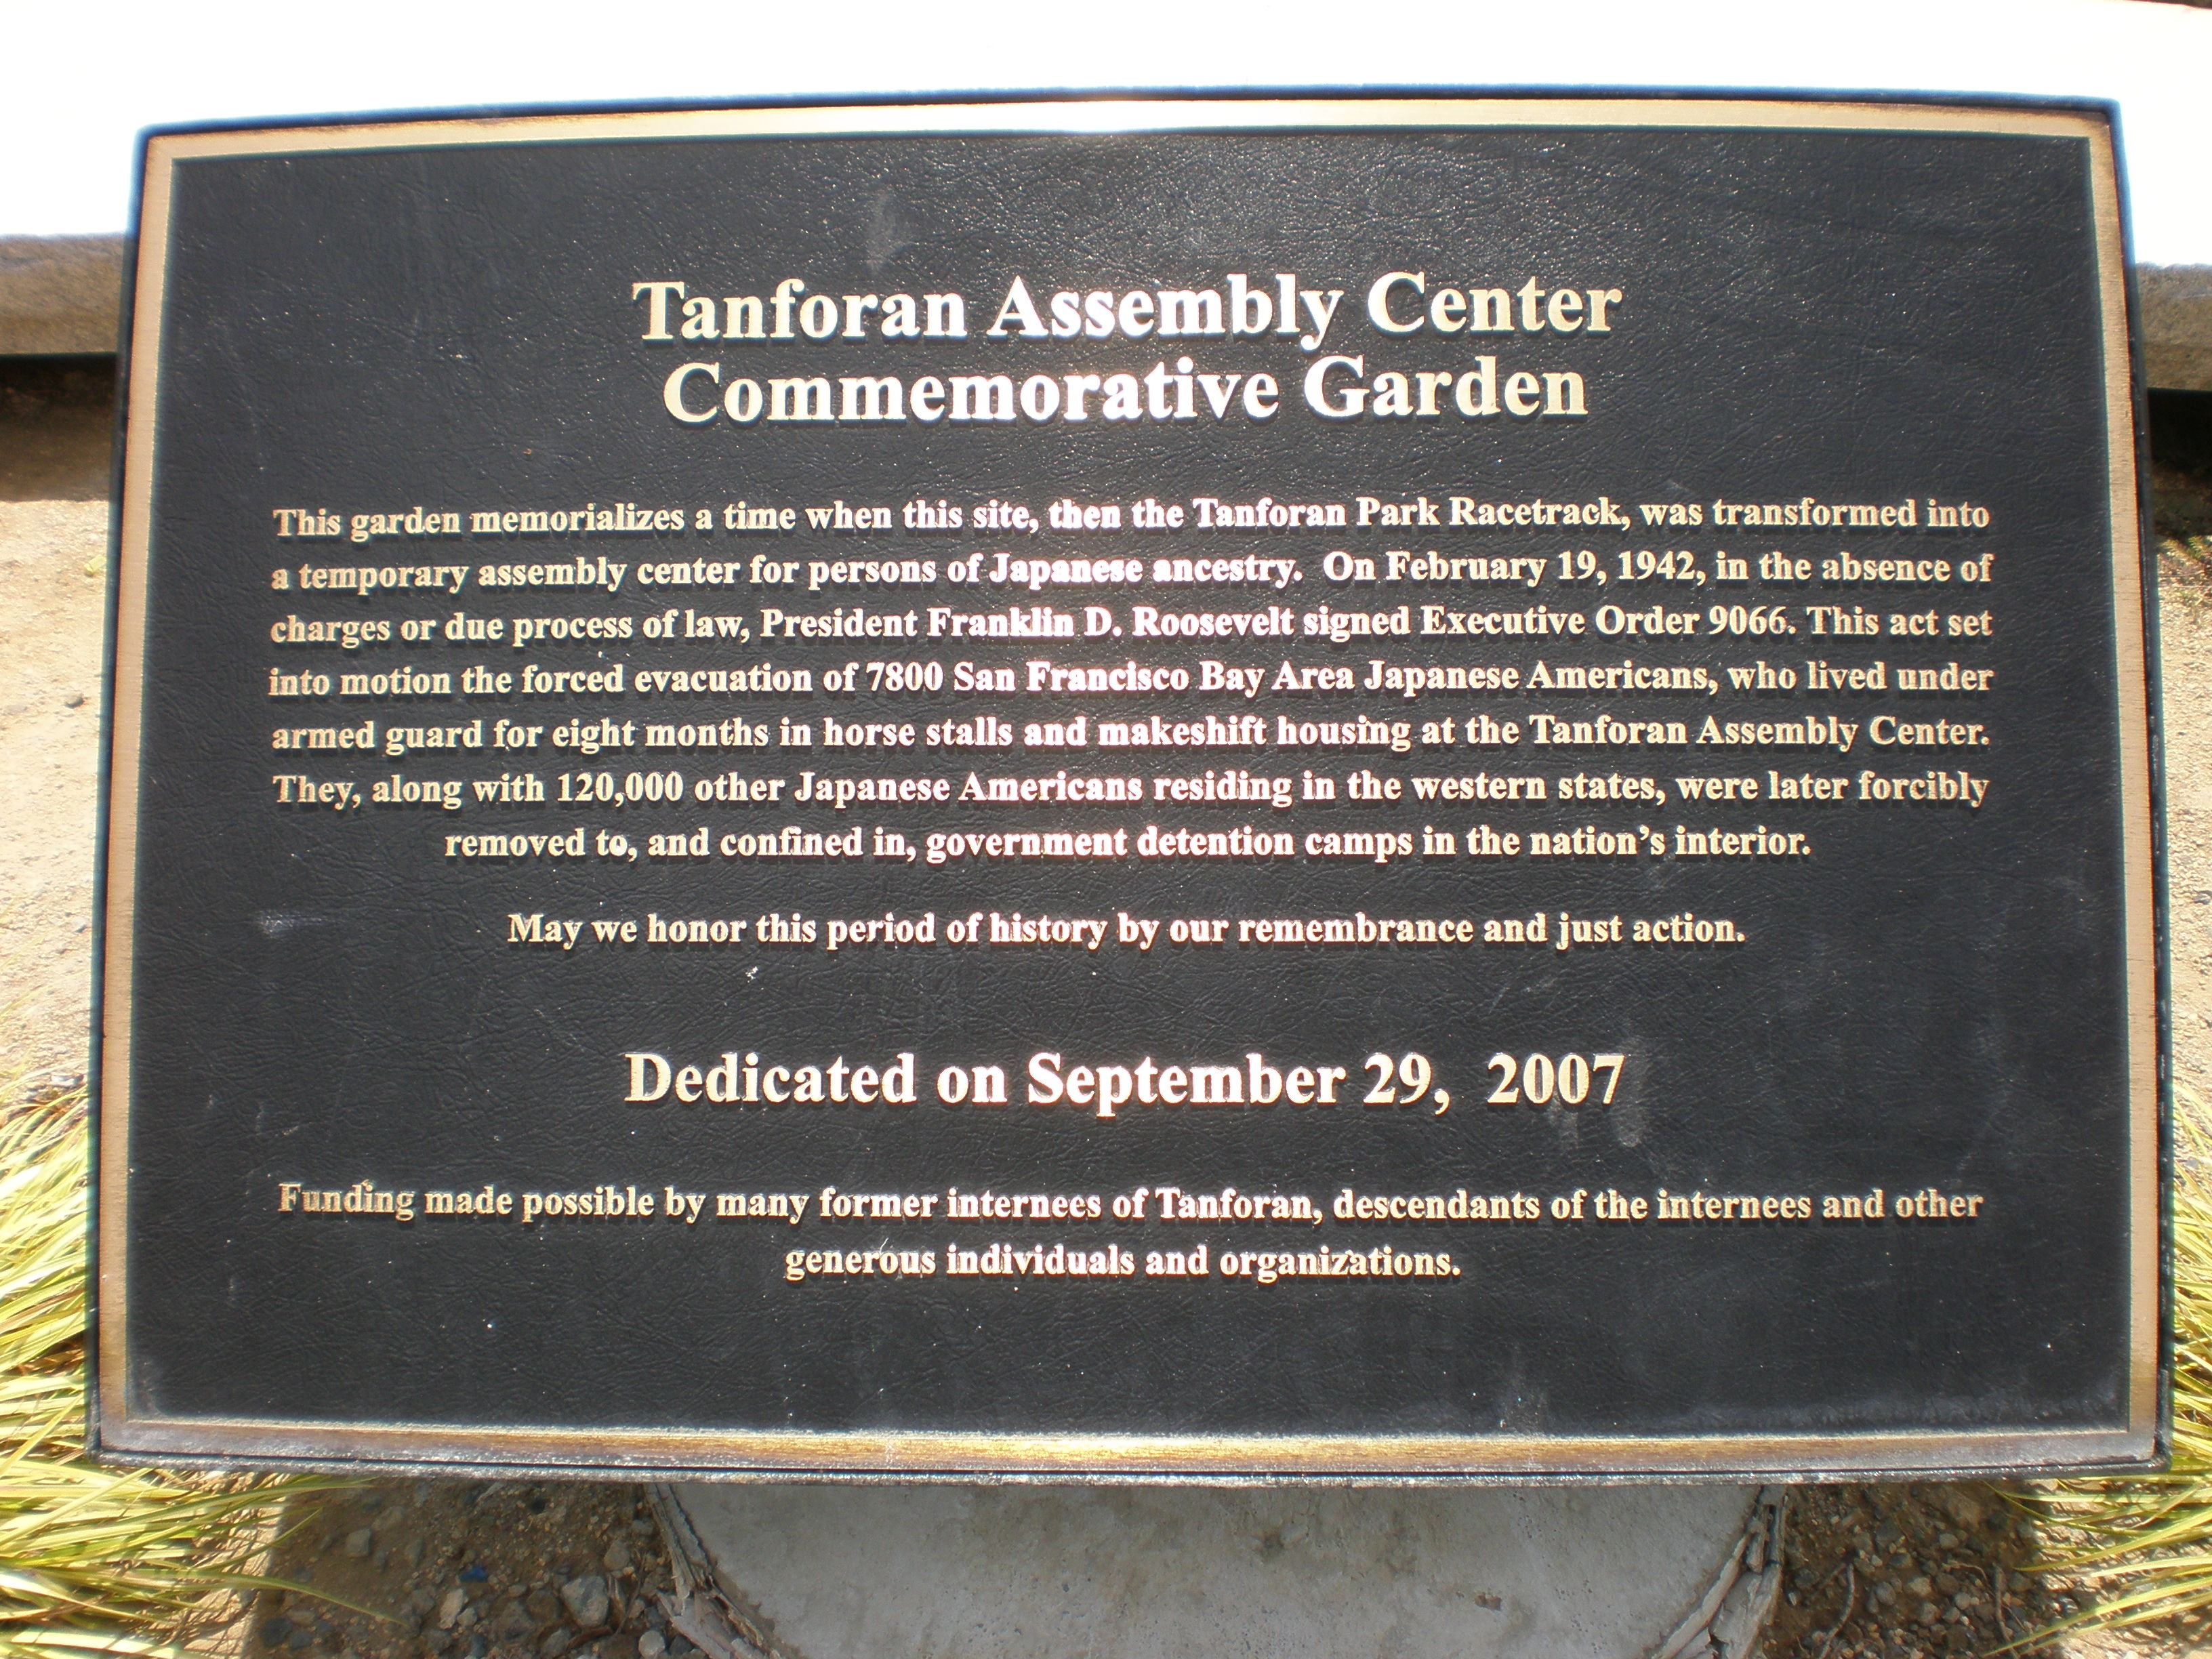 FileShops at Tanforan Commemorative Garden plaqueJPG Wikimedia